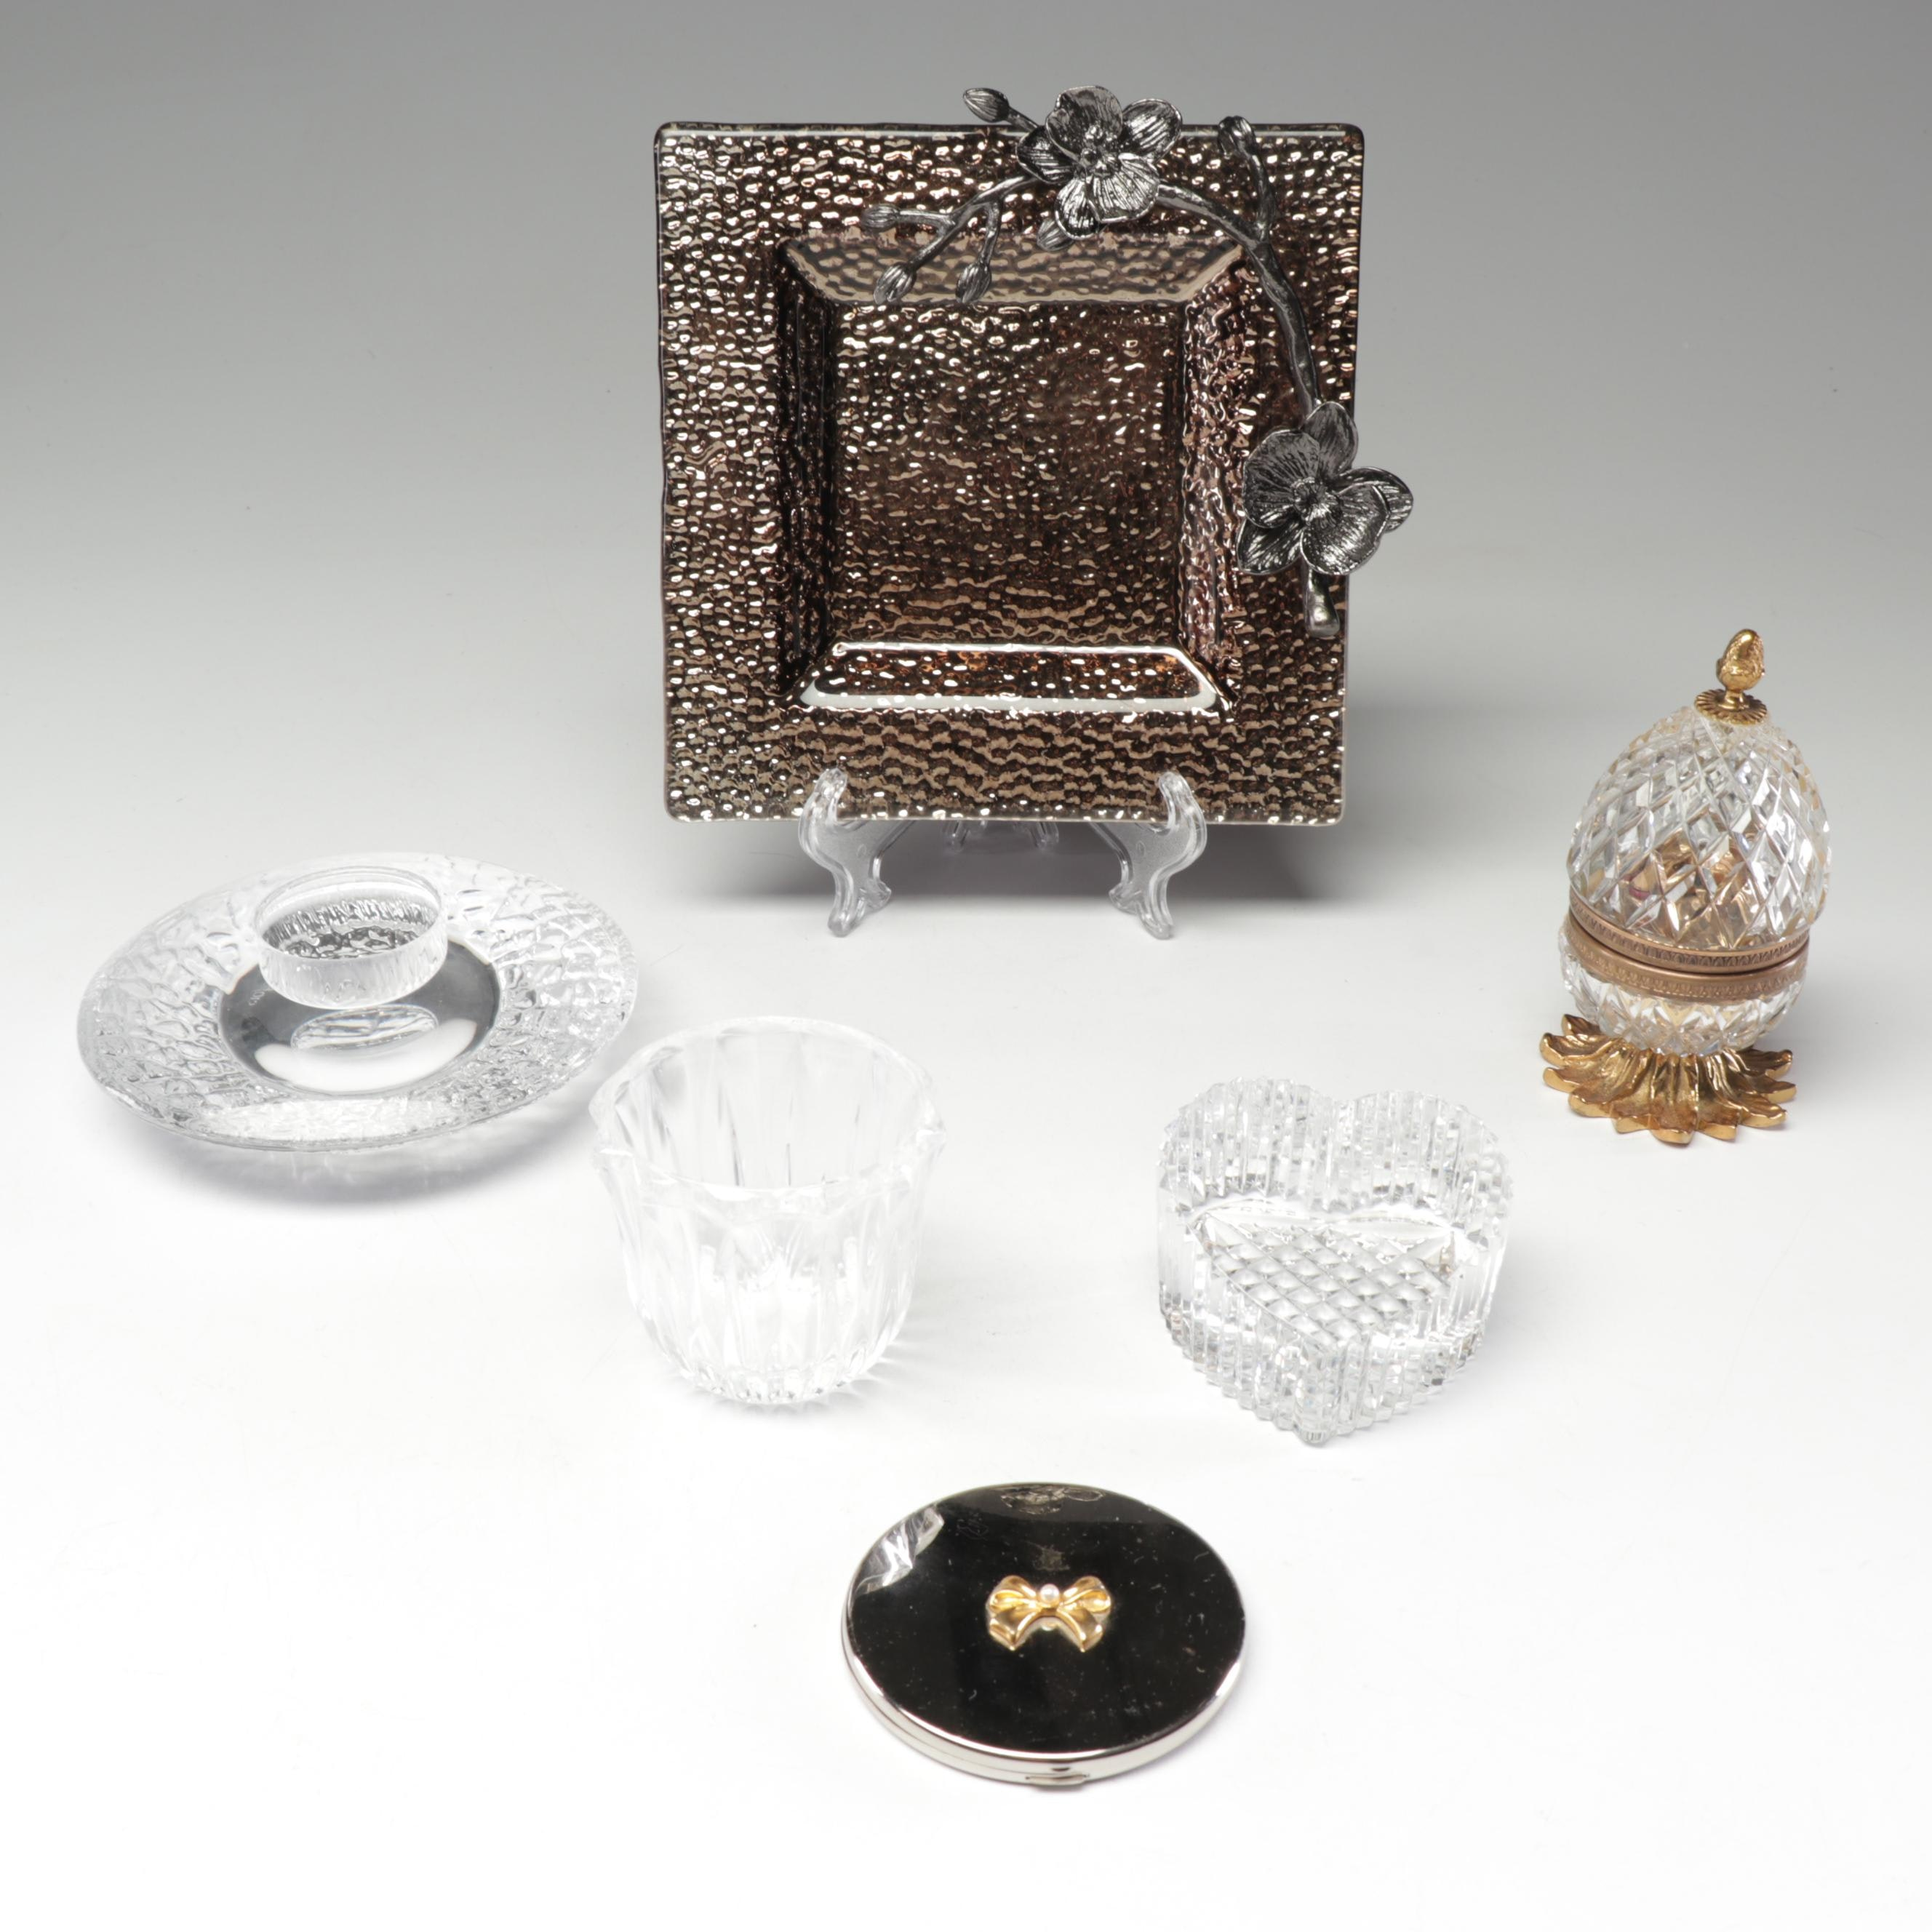 Waterford Crystal, Orrefors and Other Decorative Vanity Items